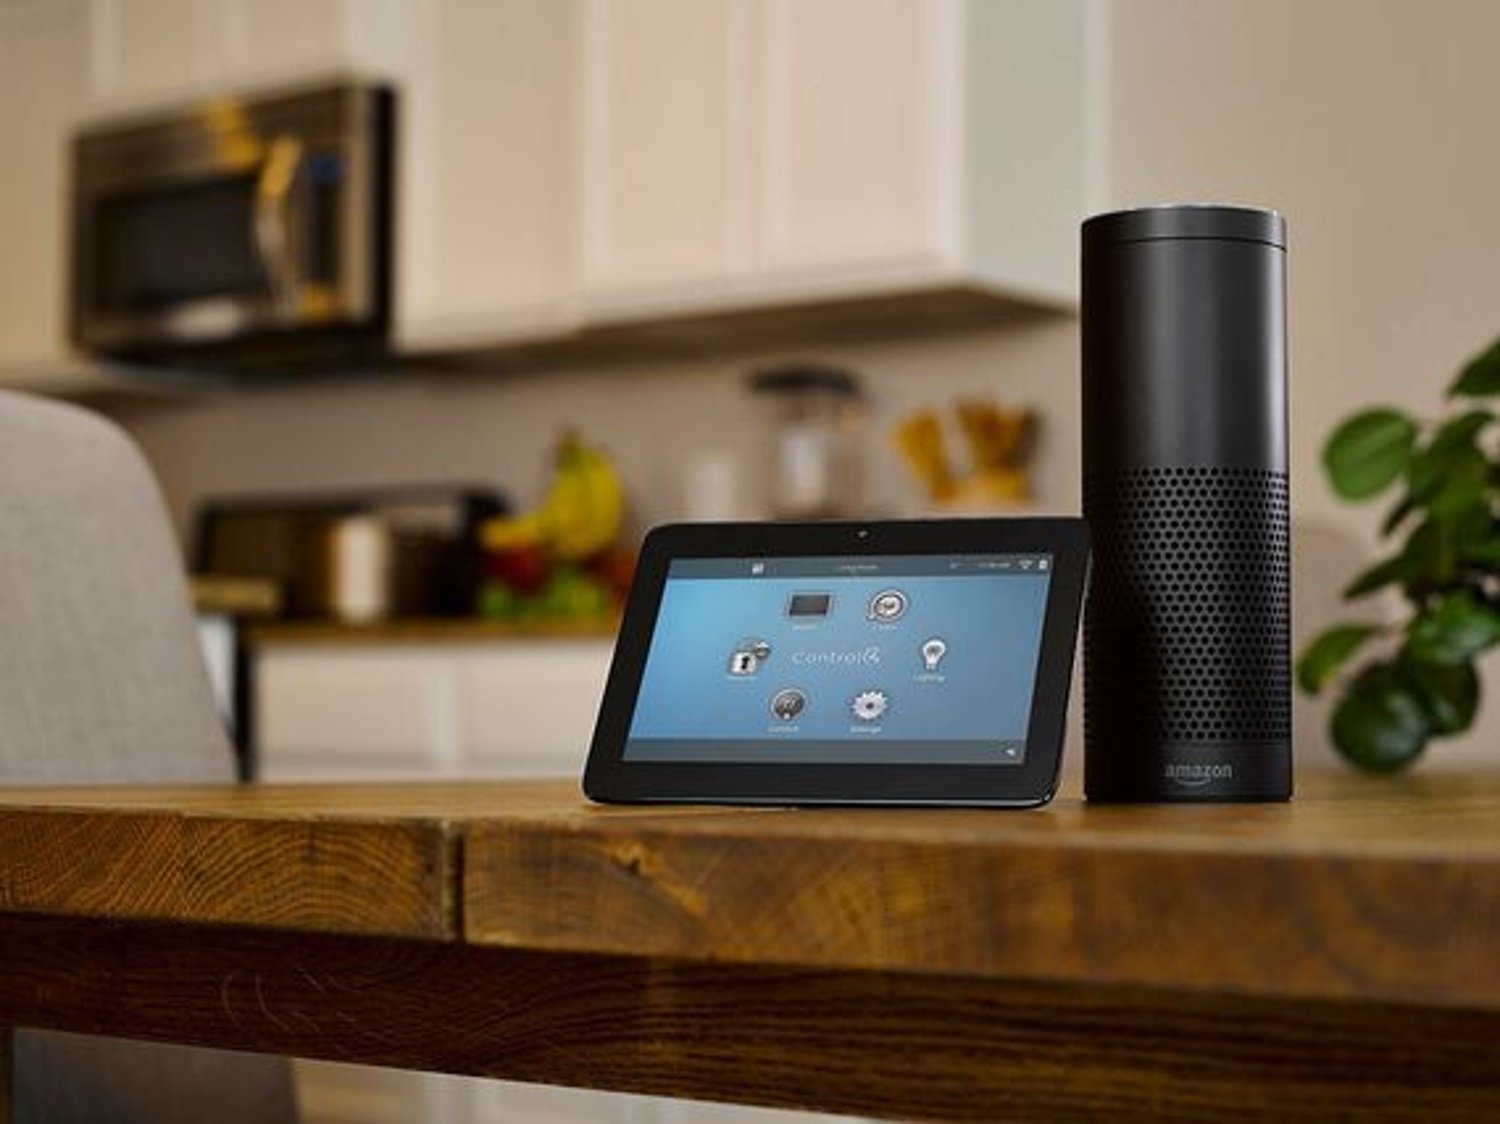 10 Things To Ask Amazon Alexa To Do At Your House